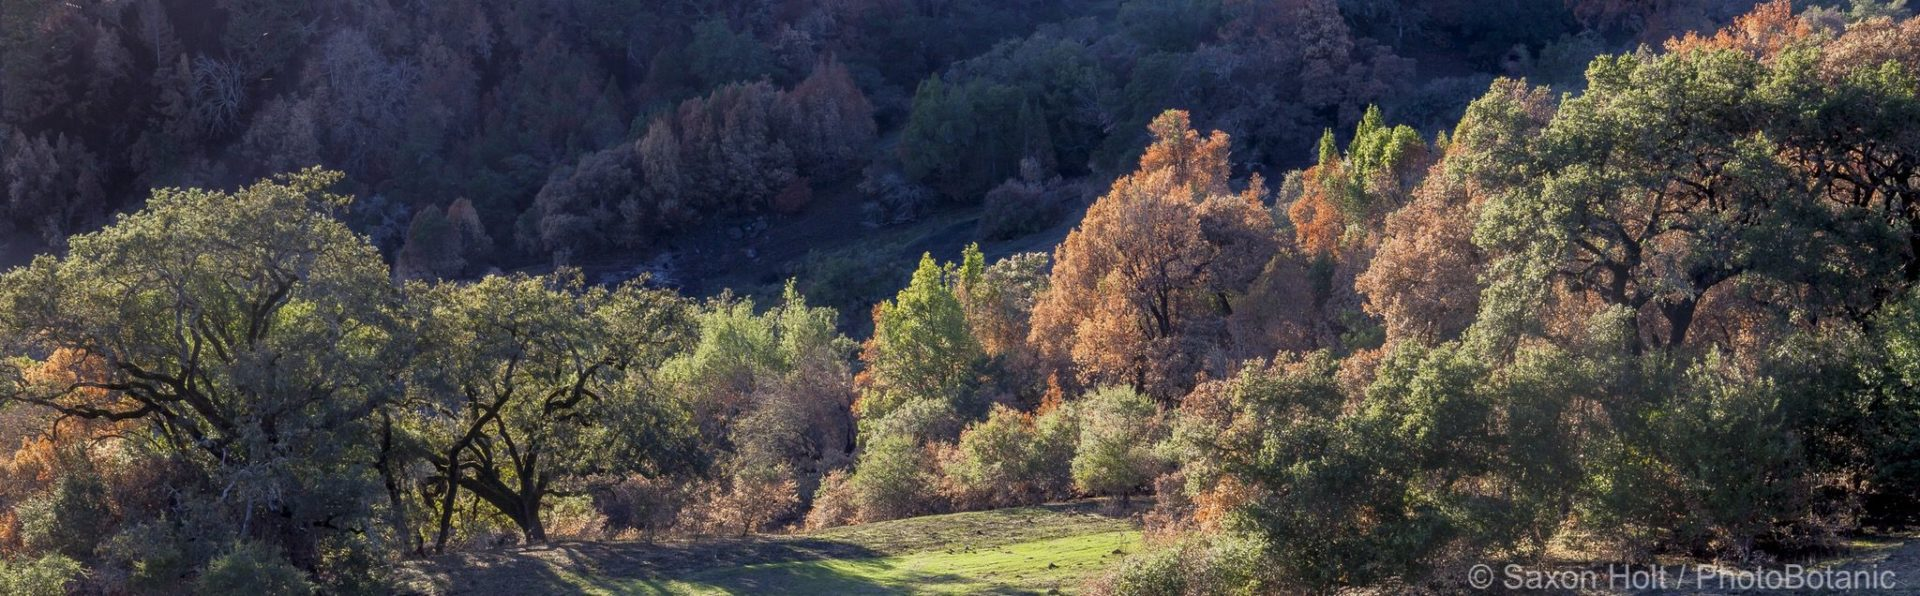 California native mixed Oak woodland landscape panorama, recovery after 2017 Sonoma fires, Pepperwood Preserve